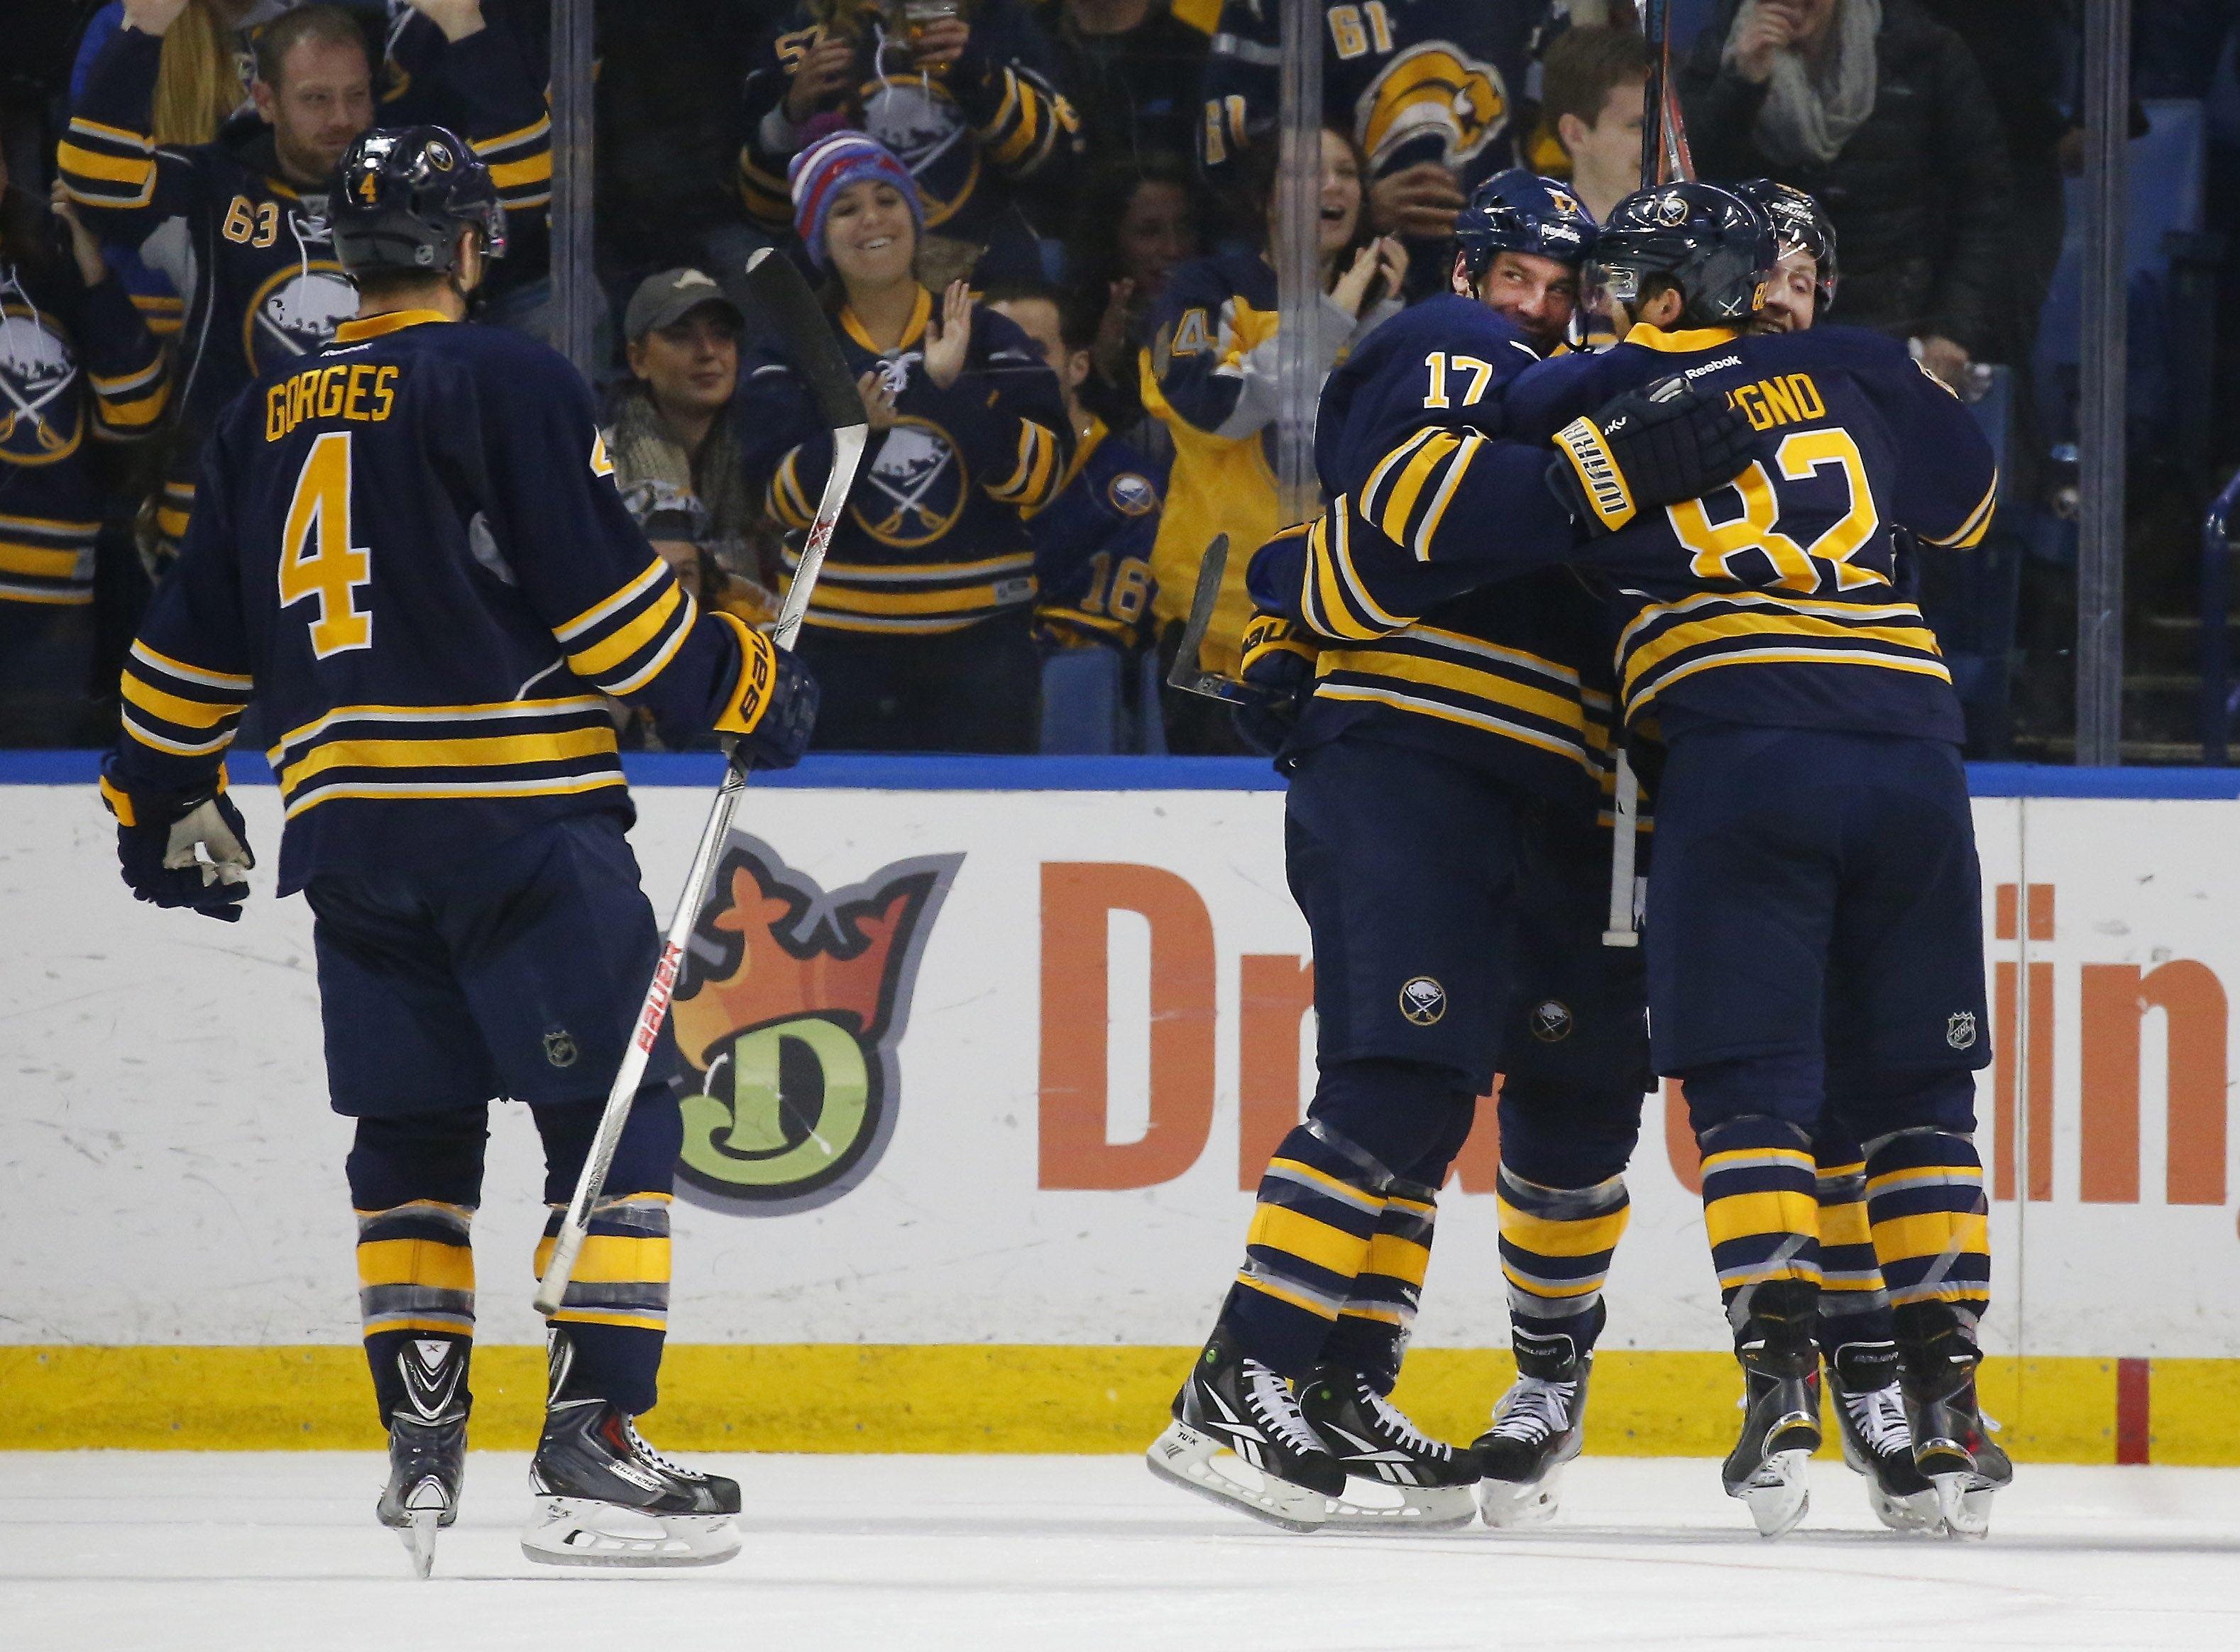 David Legwand celebrates his goal with his teammates in the second period, the Sabres' only goal of the game. (Mark Mulville/Buffalo News)